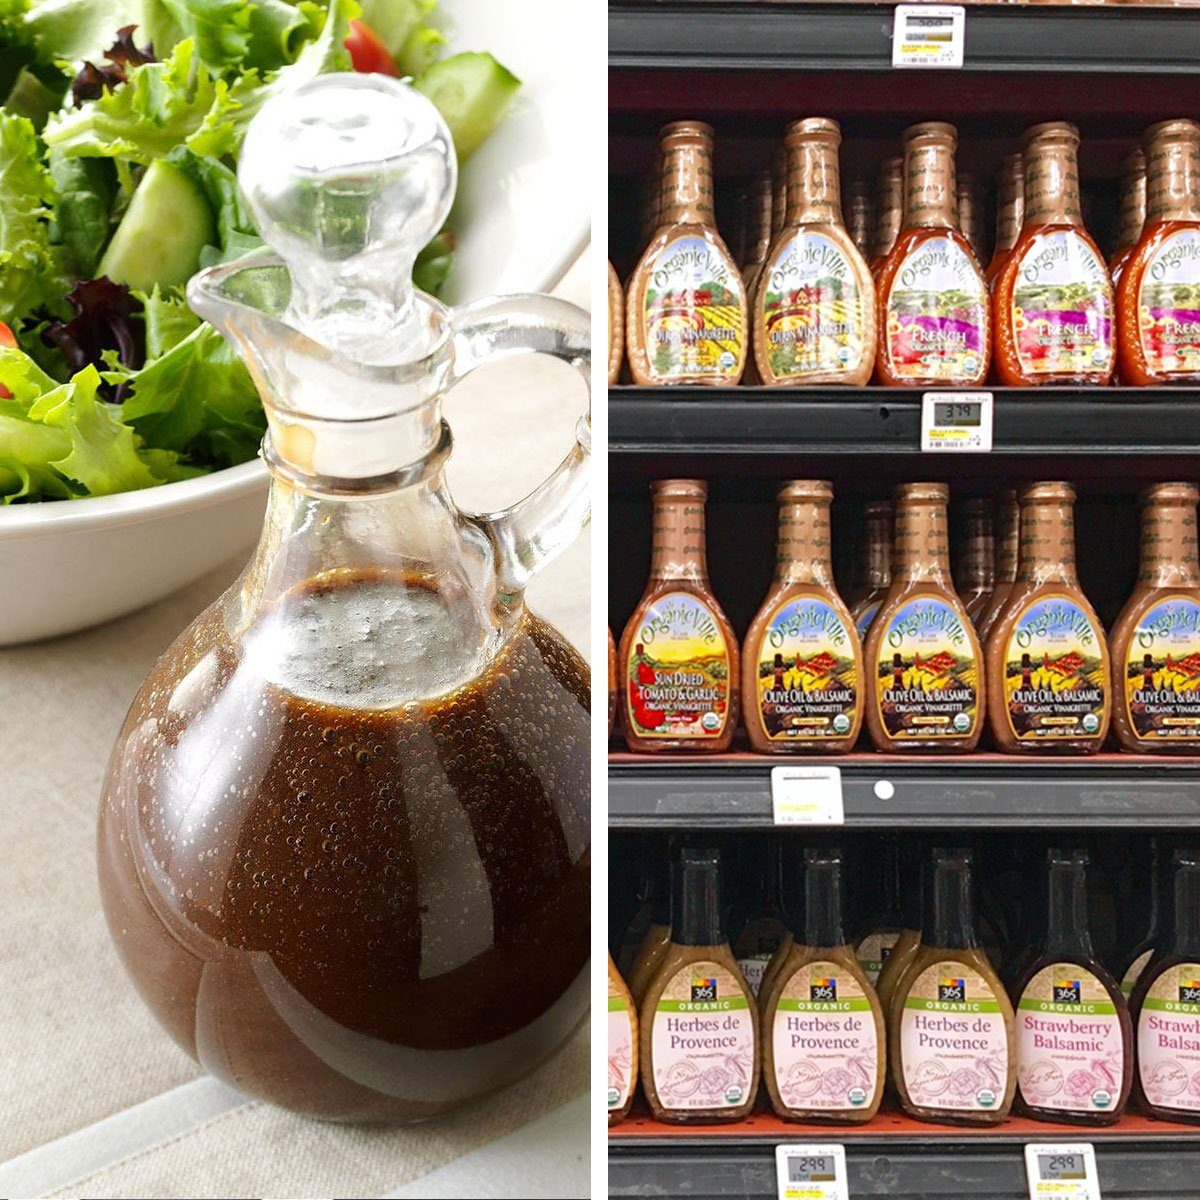 Homemade salad dressing vs store bought